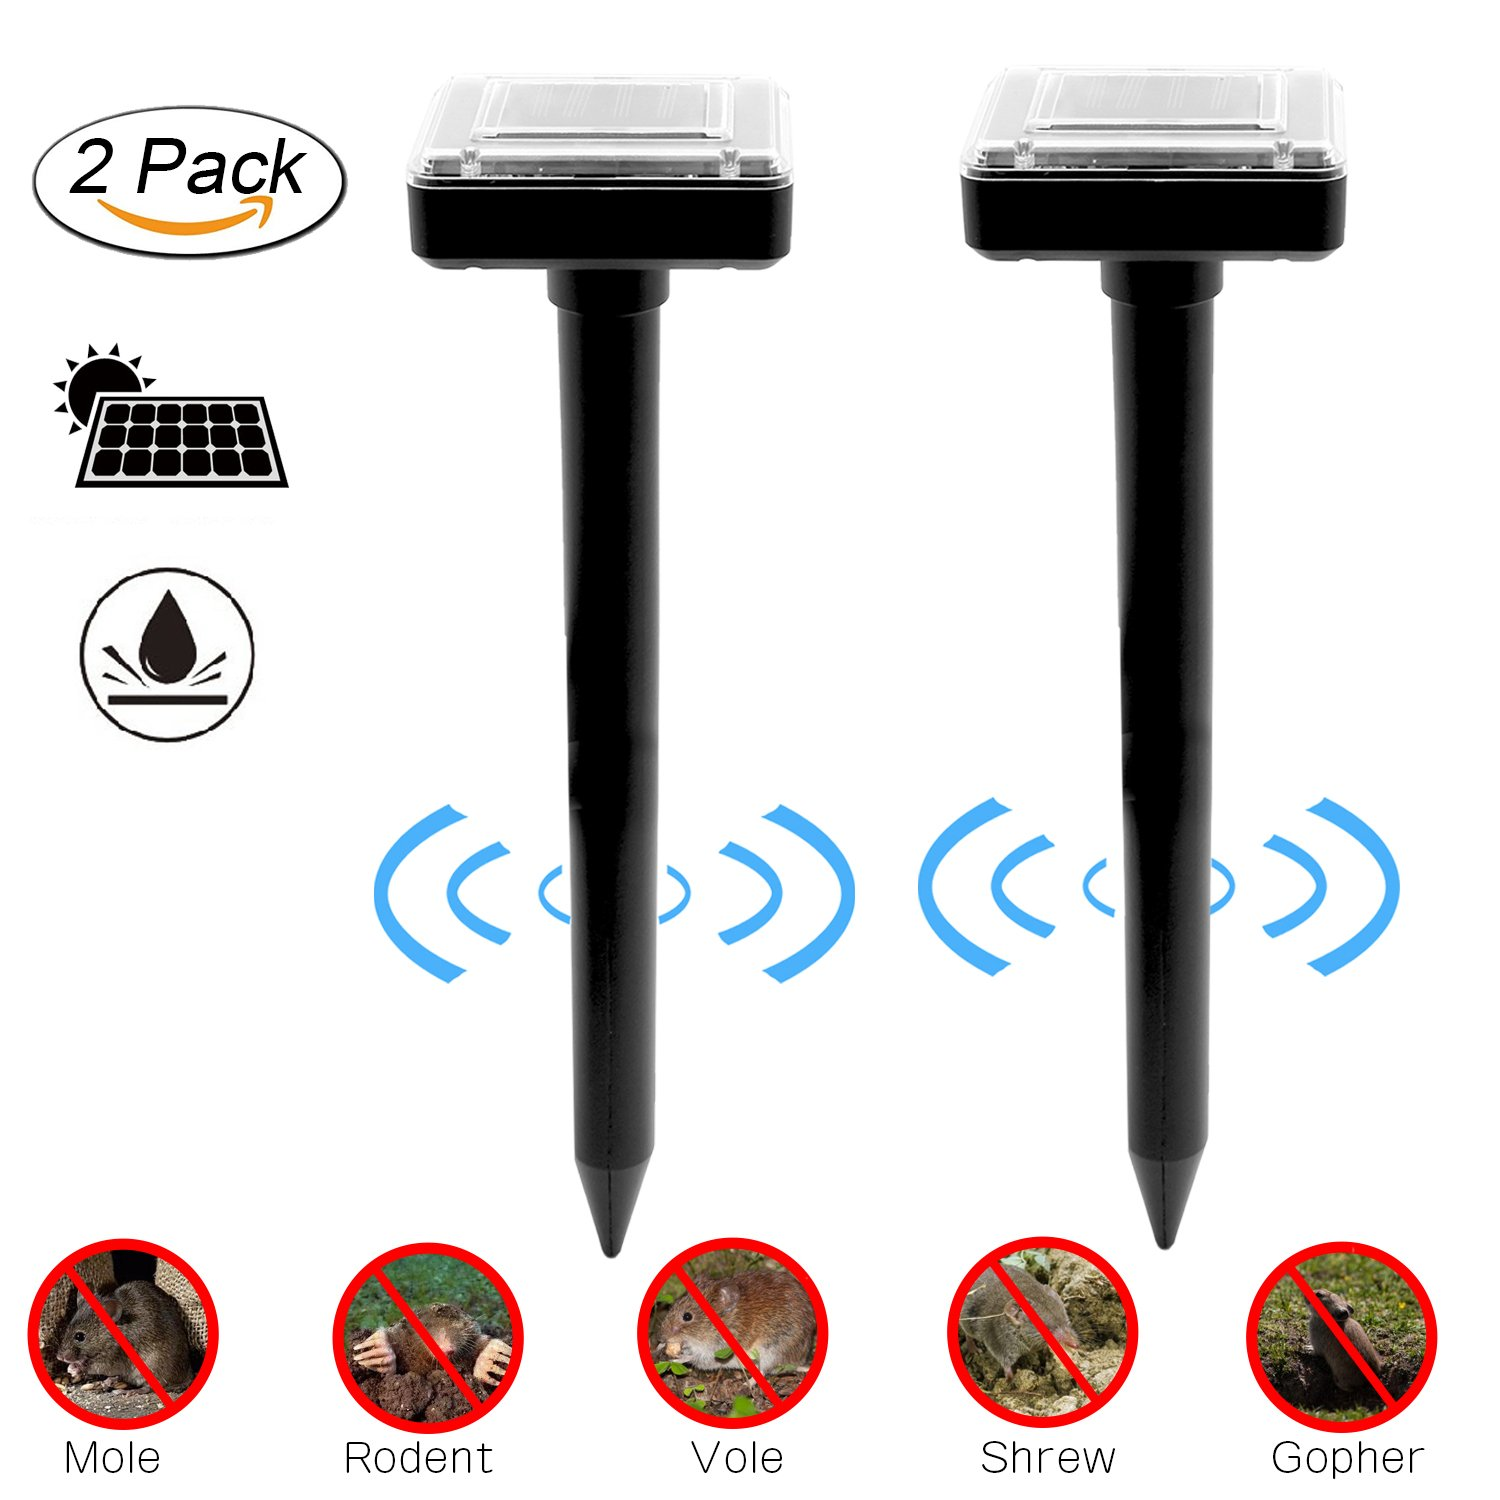 Fomei Ultrasonic Solar-Powered Mole Repellent Professional Mole Repeller Pest Deterrent Repelling Mole, Rodent, Vole, Shrew, Gopher, Snake for Outdoor Lawn Garden Yards Pest Control (2 Pack-Square)